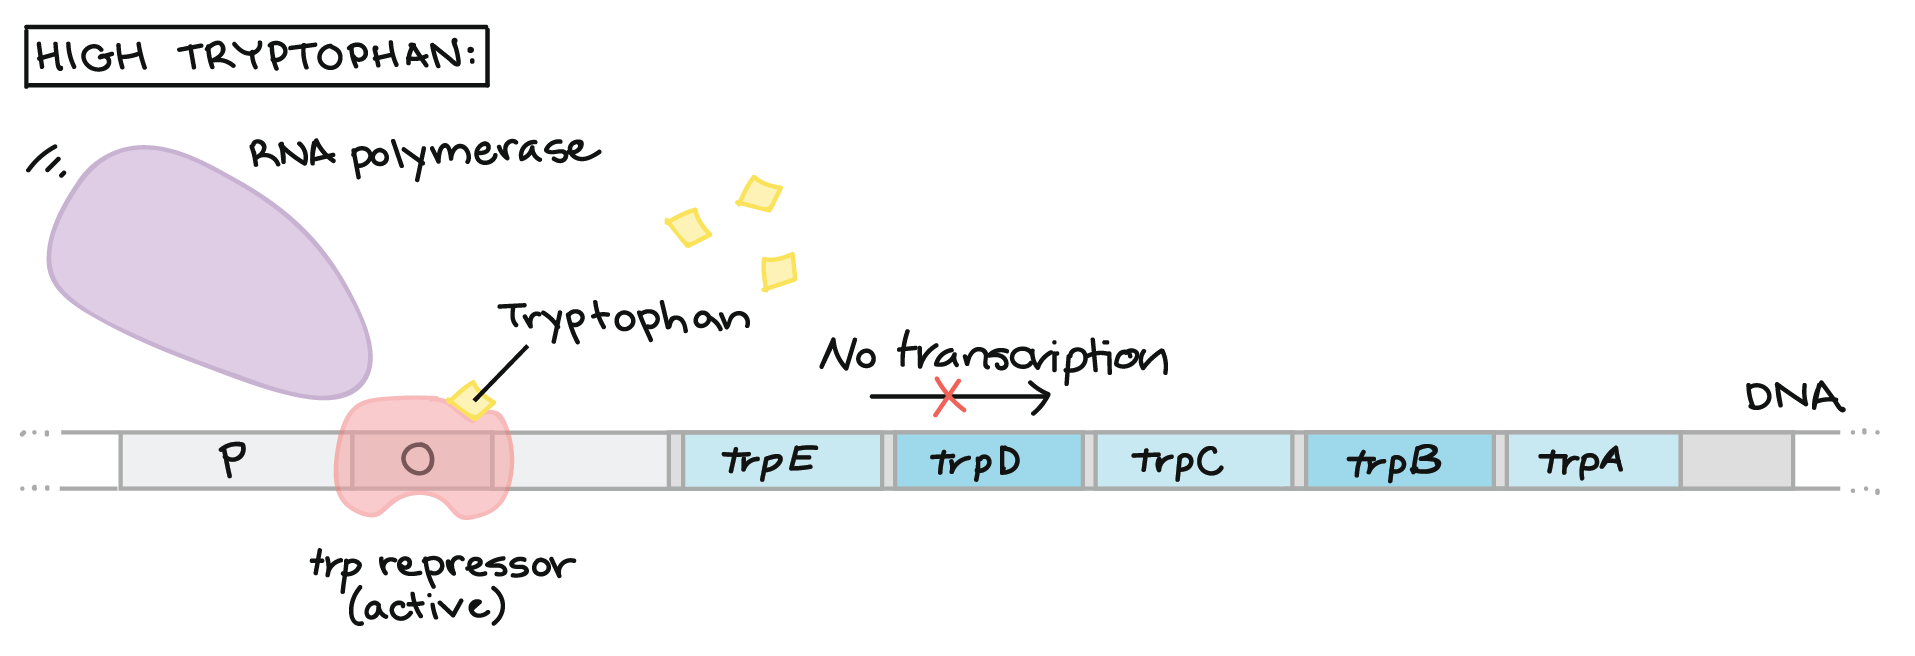 Trp operon (video) | Gene regulation | Khan Academy